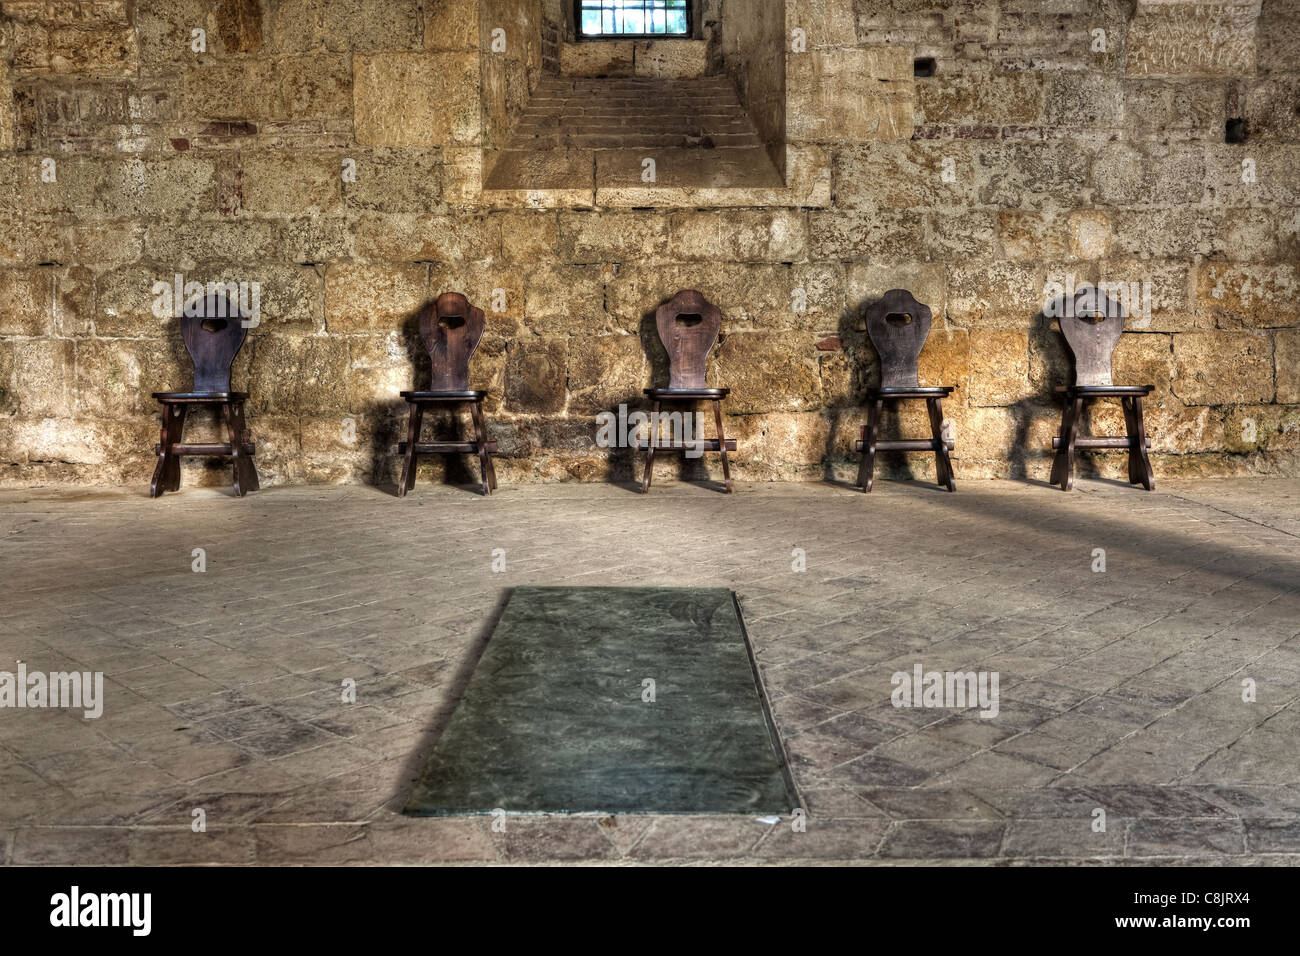 five chairs in an old abbey - Stock Image